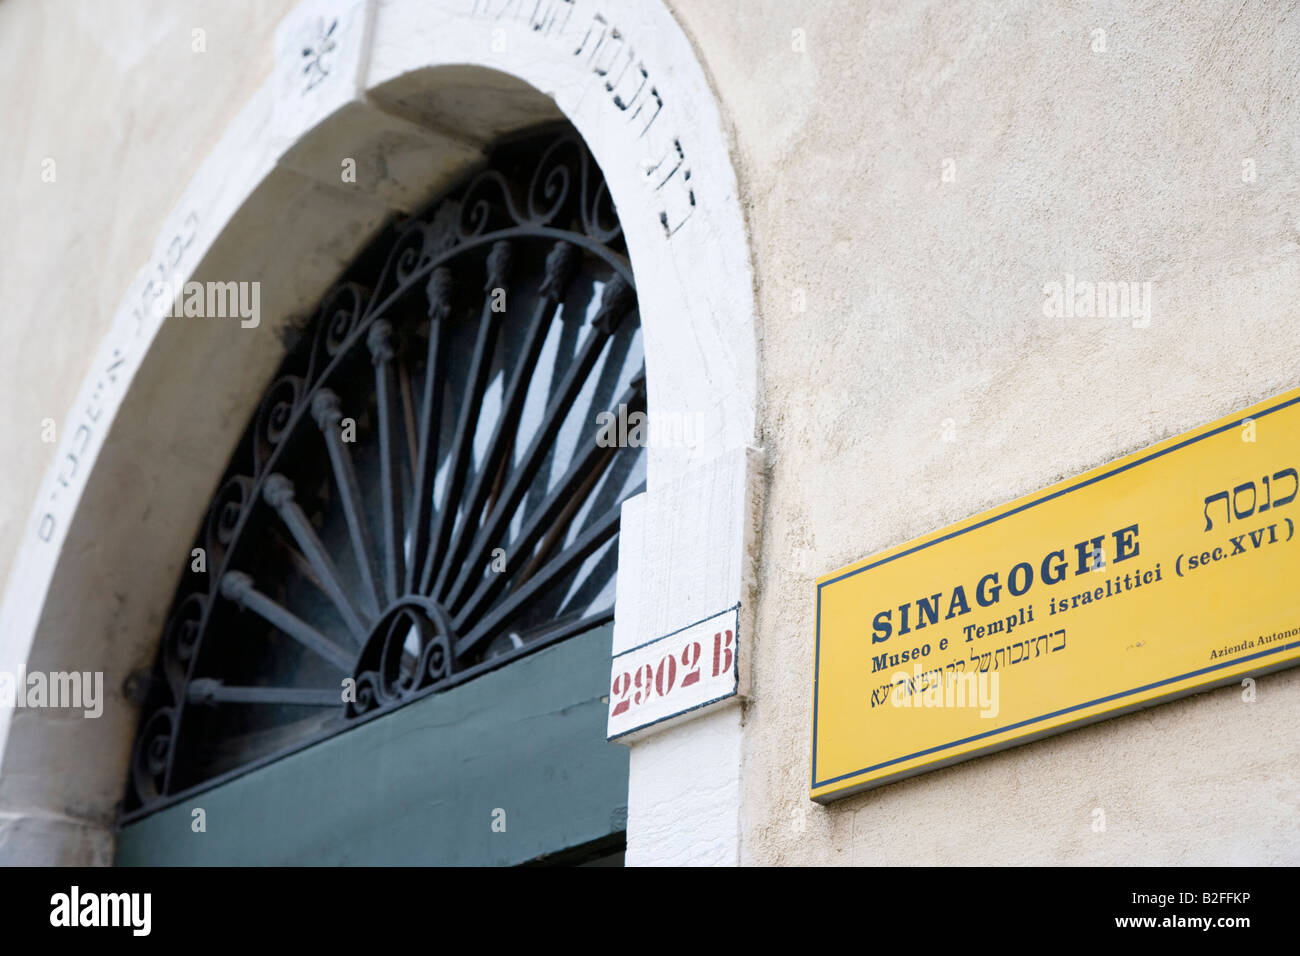 Synagogue and Hebrew Museum Venice Ghetto Venice Italy - Stock Image